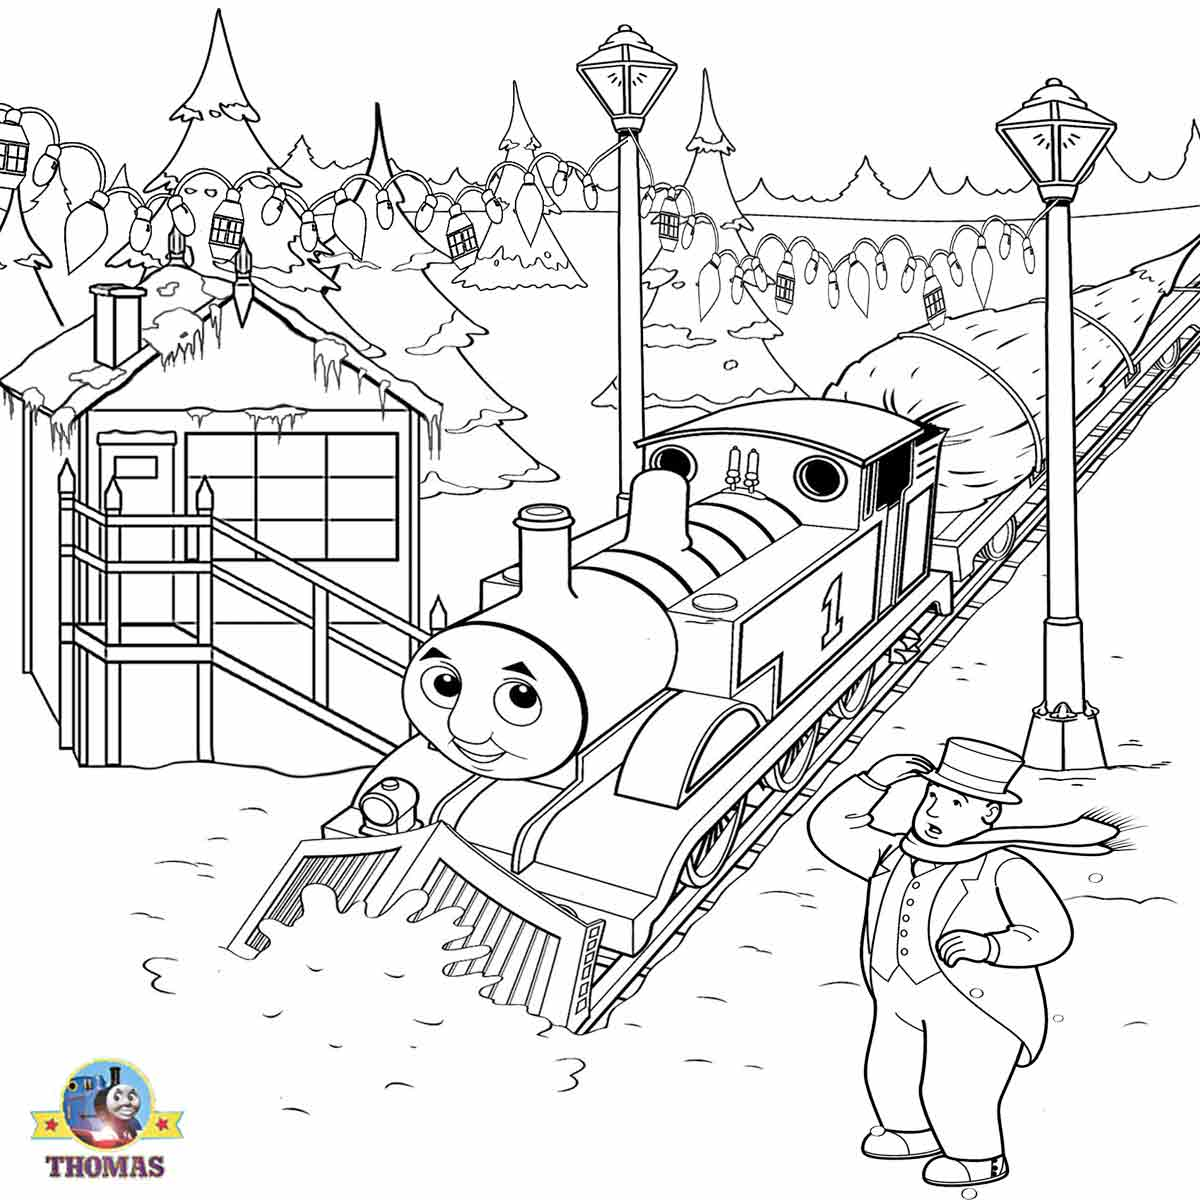 colouring pages thomas train thomas the tank engine friends free online games and pages colouring thomas